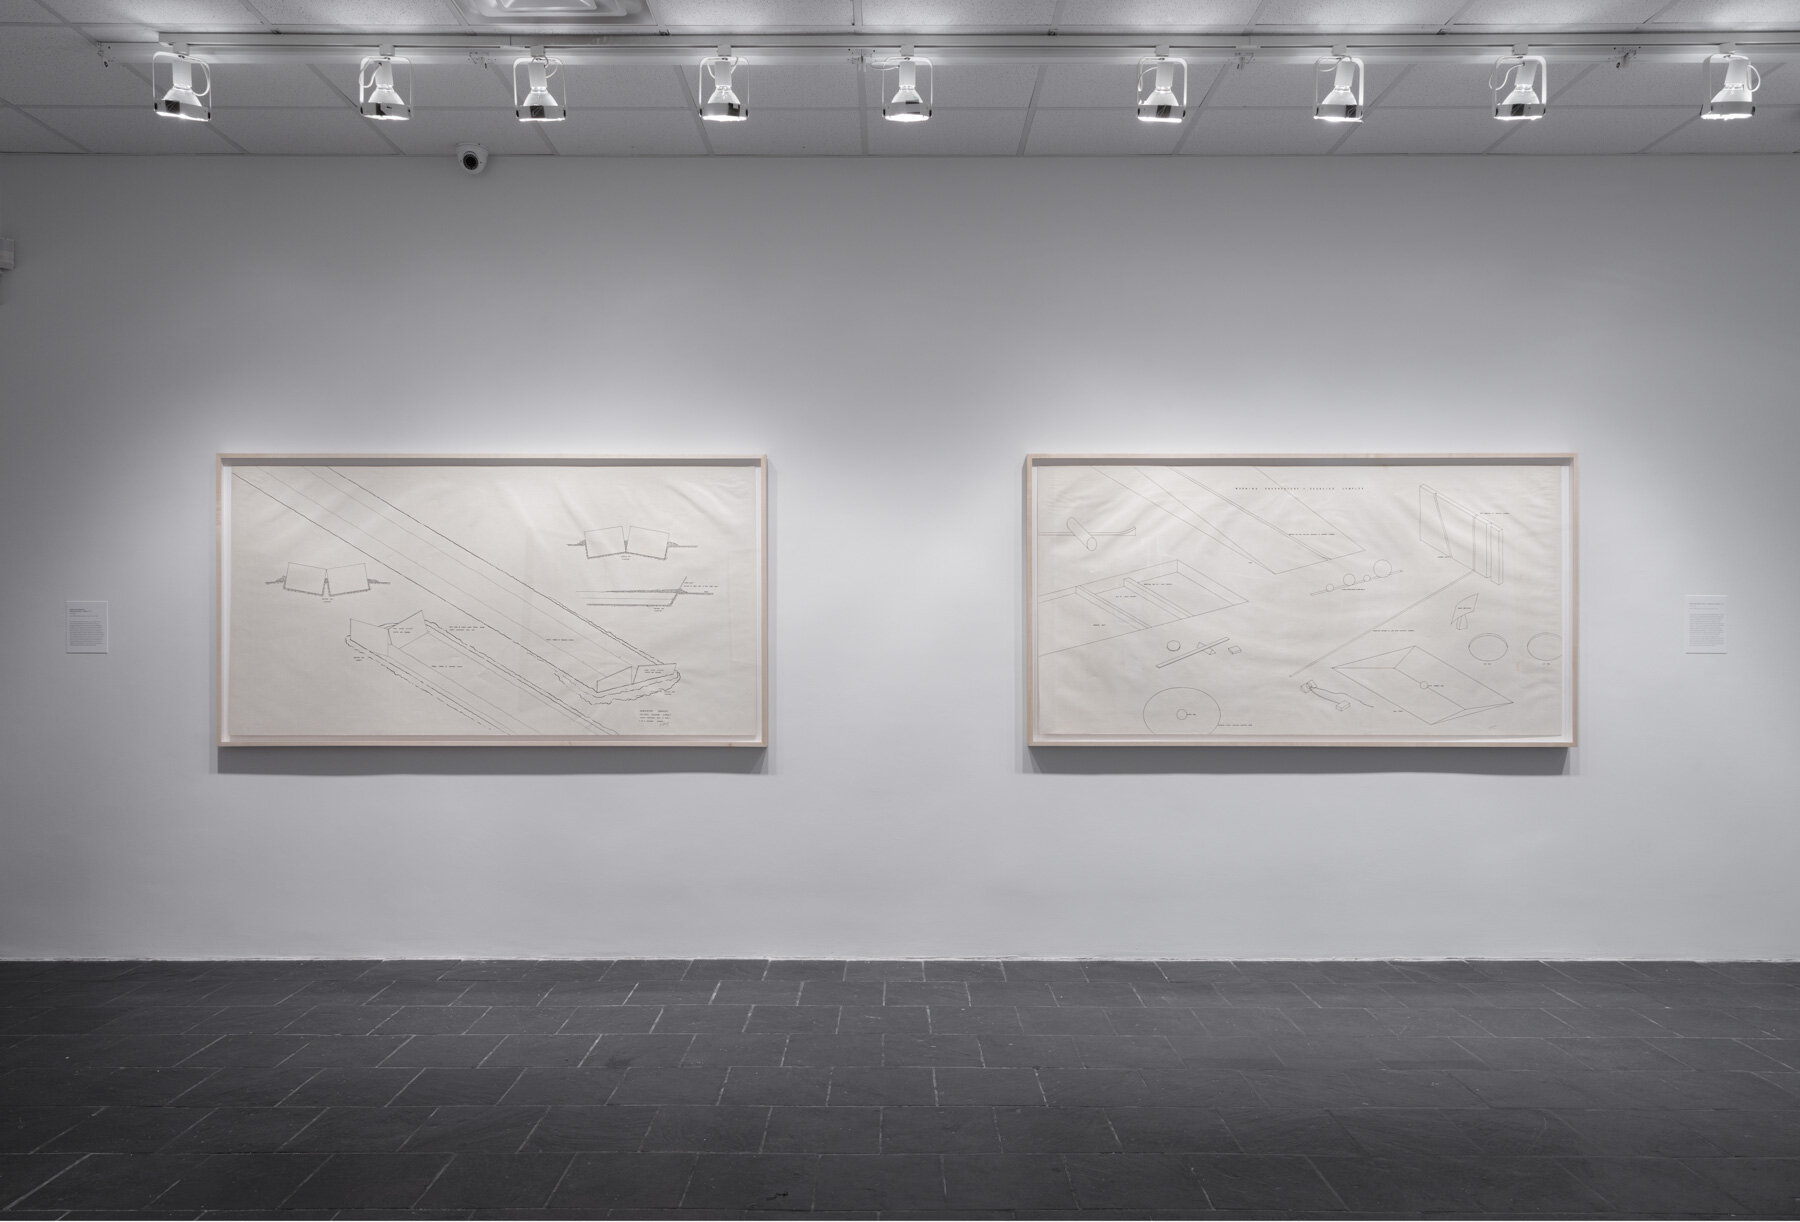 Installation view:  Robert Morris: Para-architectural projects , Hunter College Art Galleries, 2019.LEFT: Observatory Markers, Equinox Sunrise–Sunset , 1971. Ink on paper, 42 x 82 ½ in. (107 x 210 cm). Estate of Robert Morris, courtesy Castelli Gallery, New York.RIGHT:  Morning Observatory   Exercise Complex , 1971. Ink on paper, 42 x 82 ½ in. (107 x 210 cm). Estate of Robert Morris, courtesy Castelli Gallery, New York. © 2019 The Estate of Robert Morris / Artists Rights Society (ARS). Photo: Stan Narten